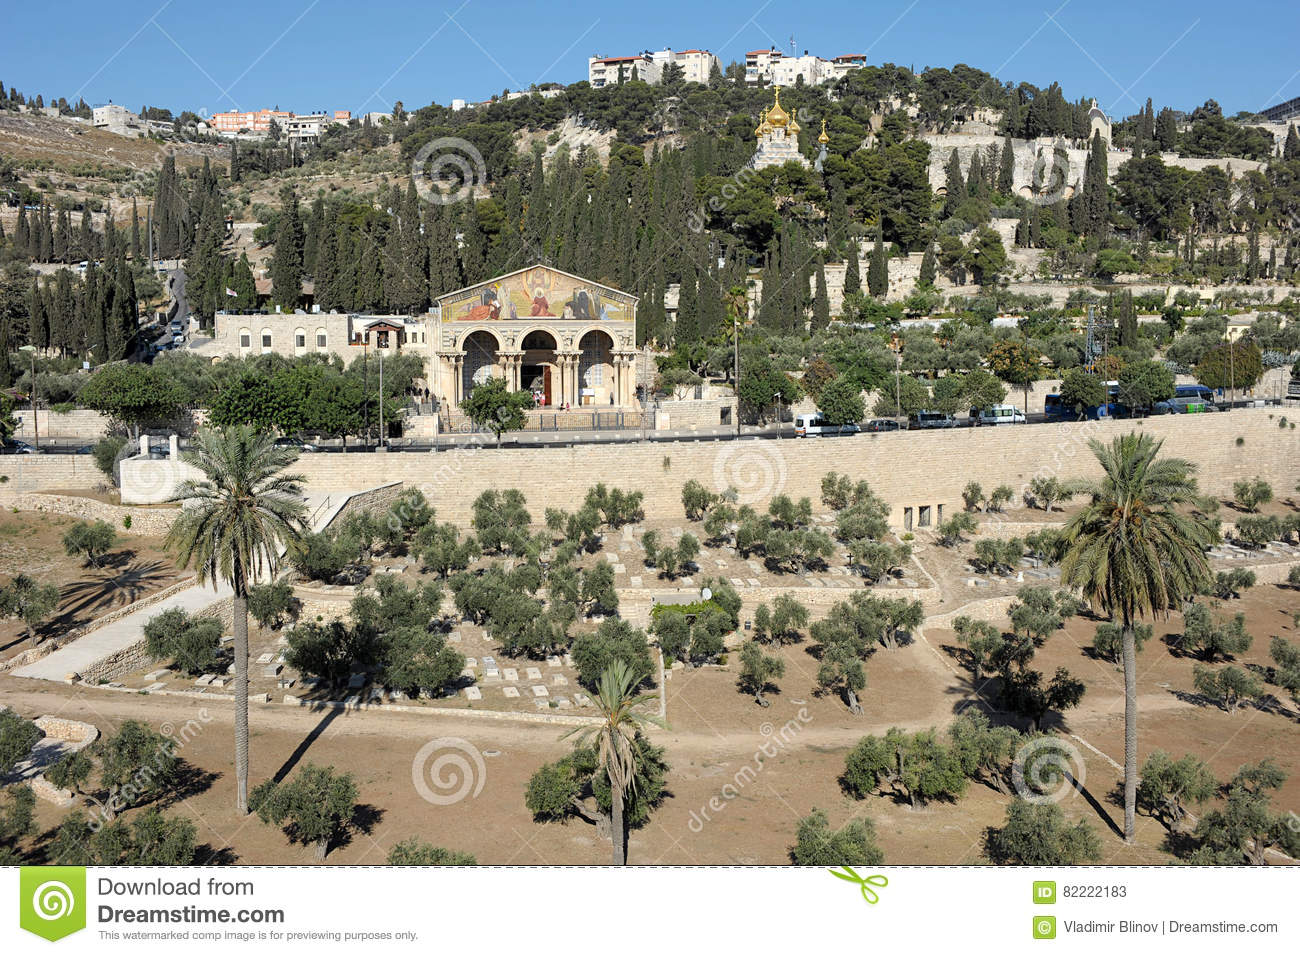 Kidron Valley And The Mount Of Olives Stock Image - Image of ... on temple mount map, hinnom valley map, gihon spring, tyropoeon valley, united states valley map, savannah valley map, valley of josaphat map, ottawa valley map, lauterbrunnen valley map, valley of rephaim map, church of the holy sepulchre map, hezekiah's tunnel map, tel arad map, valley of josaphat, jezreel valley map, jordan rift valley map, gihon spring map, jordan river map, panamint valley map, jerusalem map, hudson valley map, mount of olives map, gethsemane map,